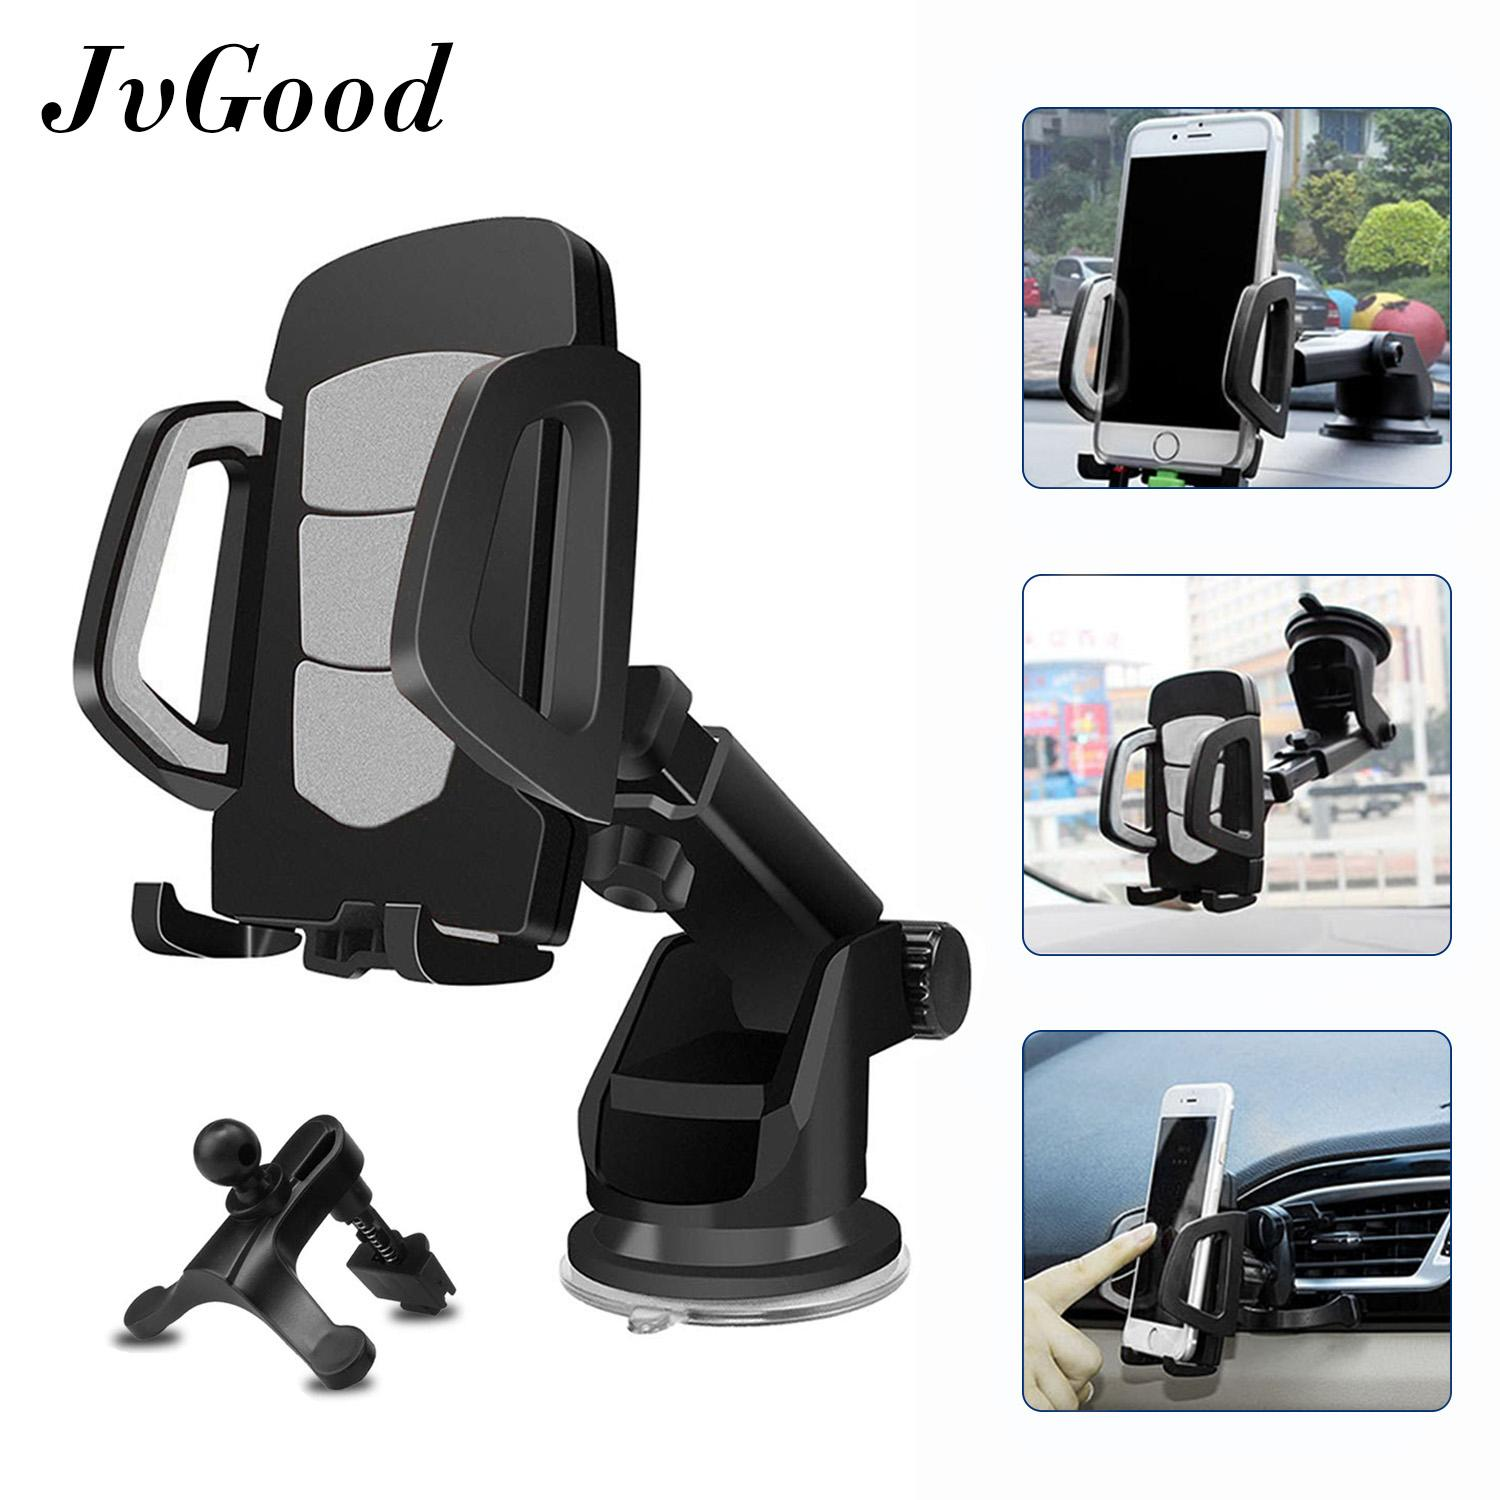 Buy Car Mounts Mobile Accessories Phone Holder Automotive Outlet Sucker Jvgood Mount Holder3 In 1 Universal Smartphones Air Vent Gps Dashboard